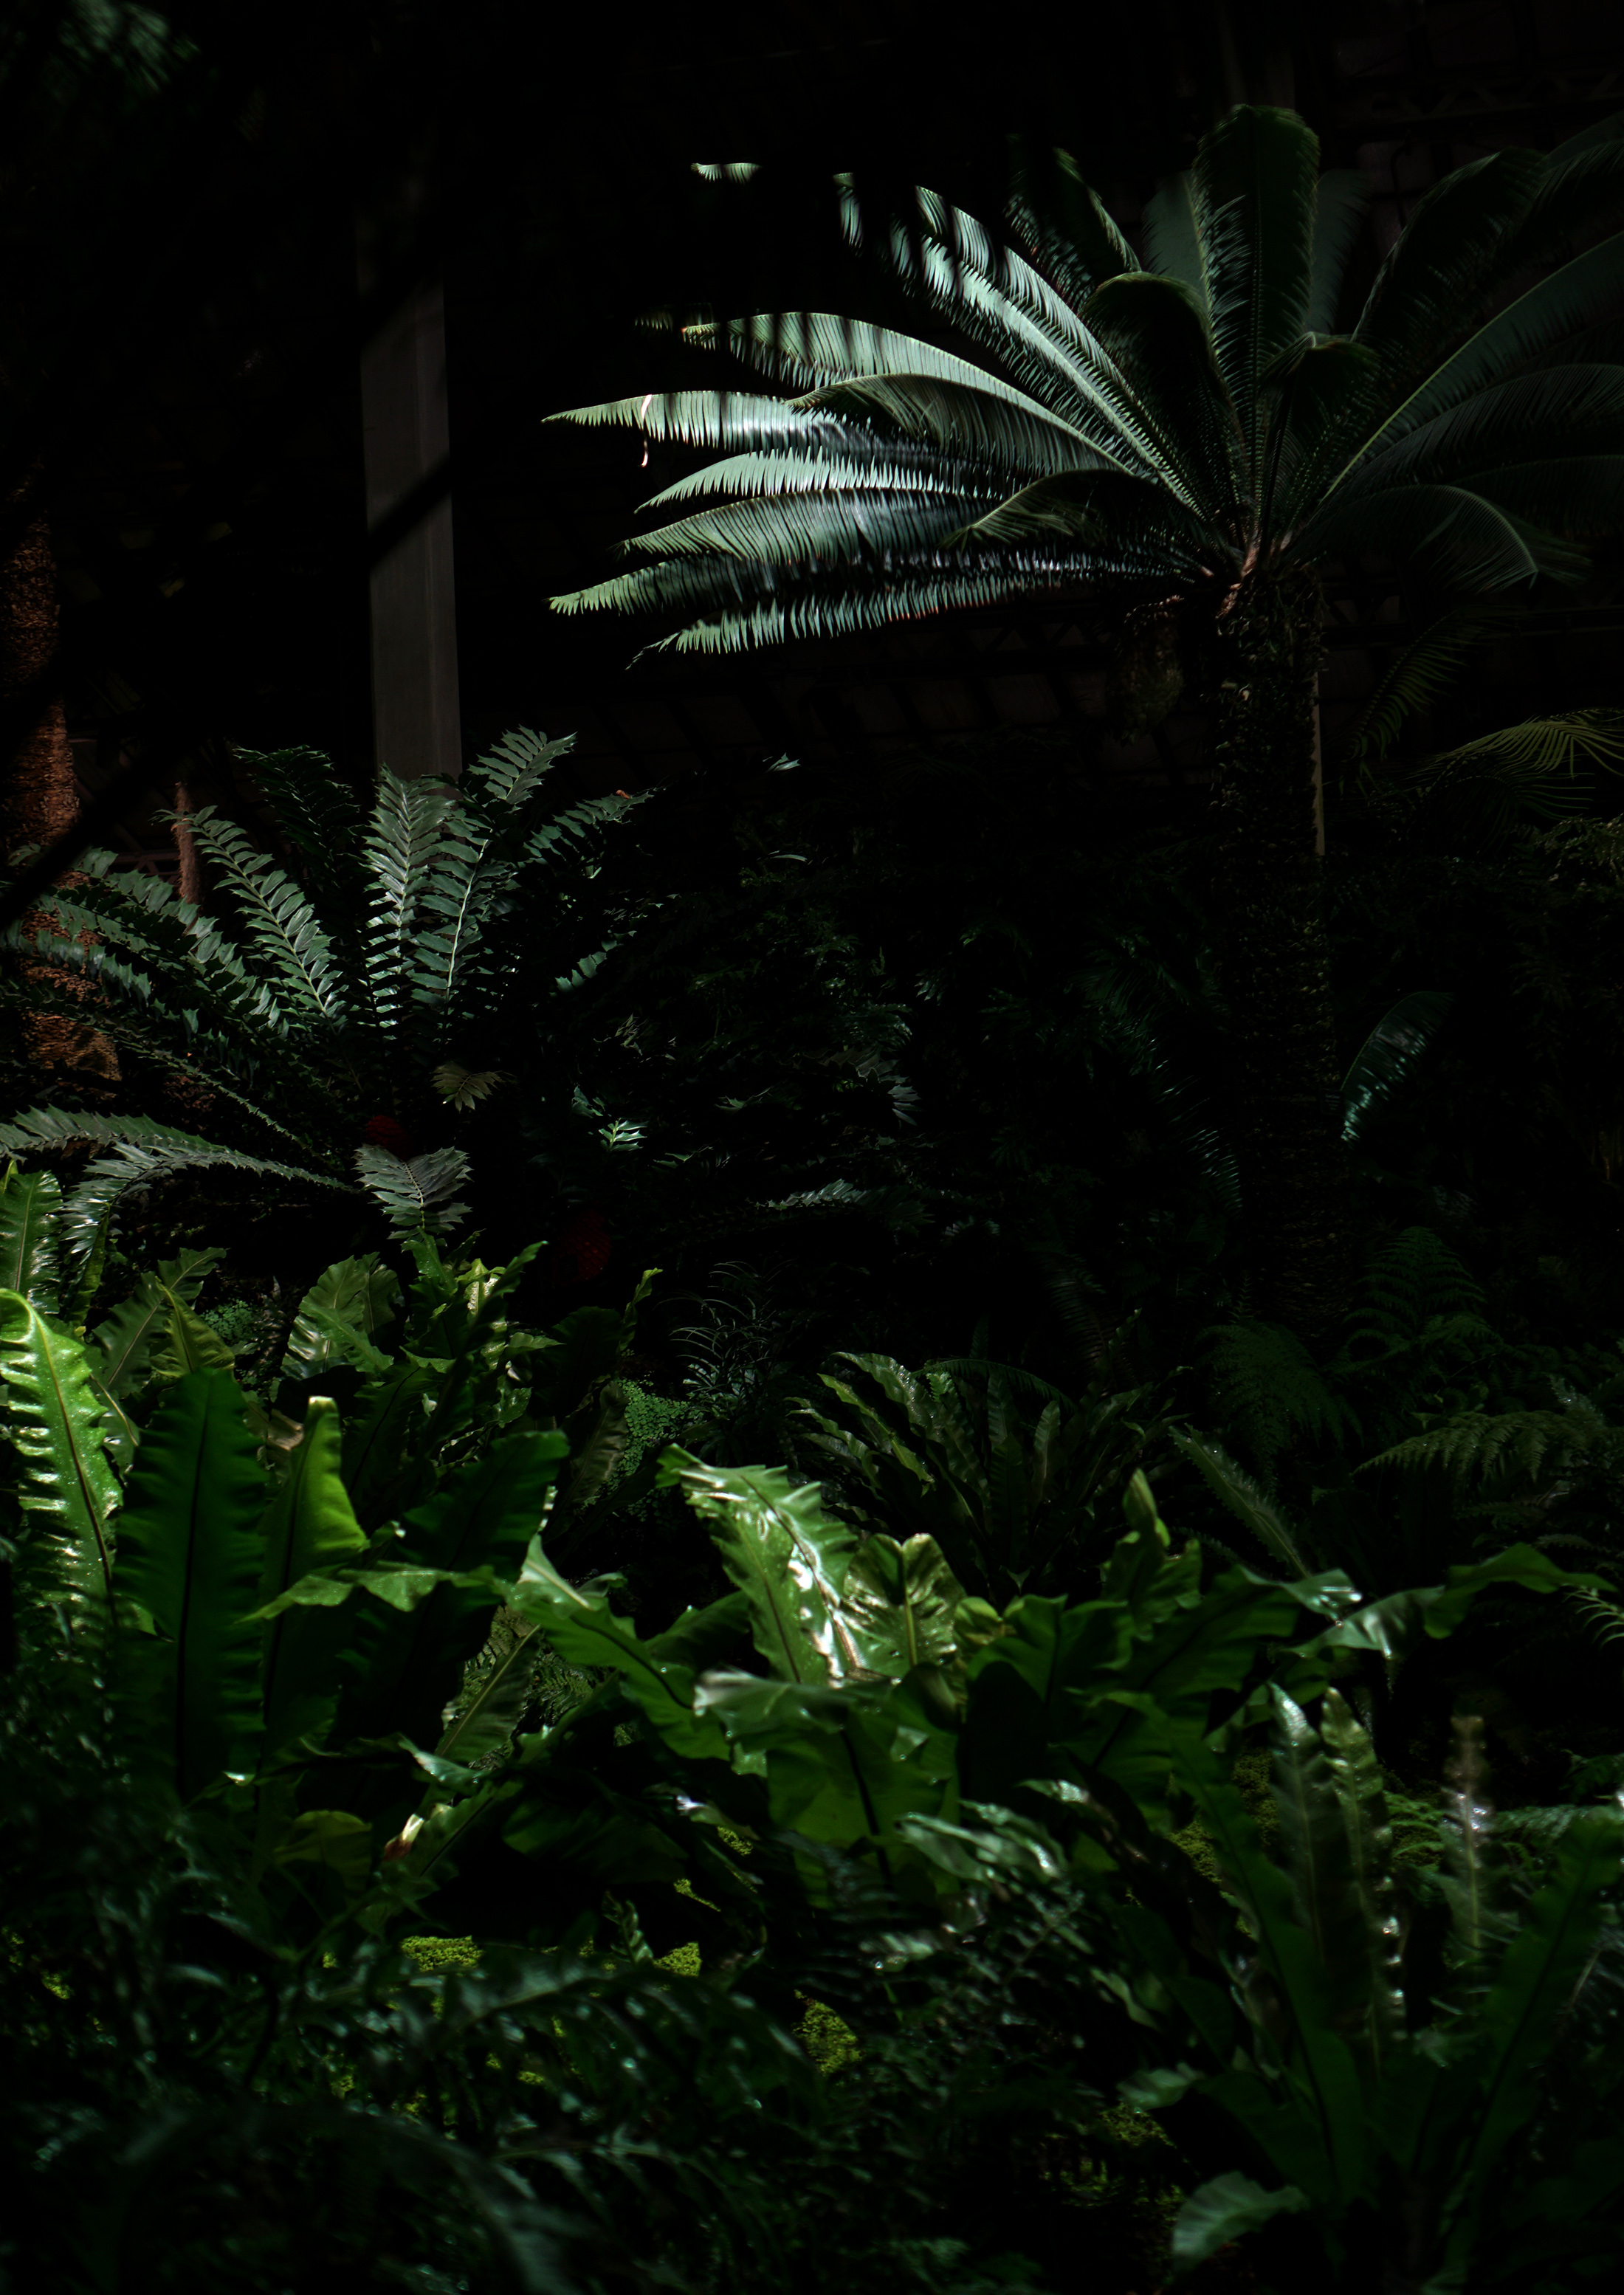 Uplit ferns in the Garfield Park Conservatory at night, Chicago / Darker than Green